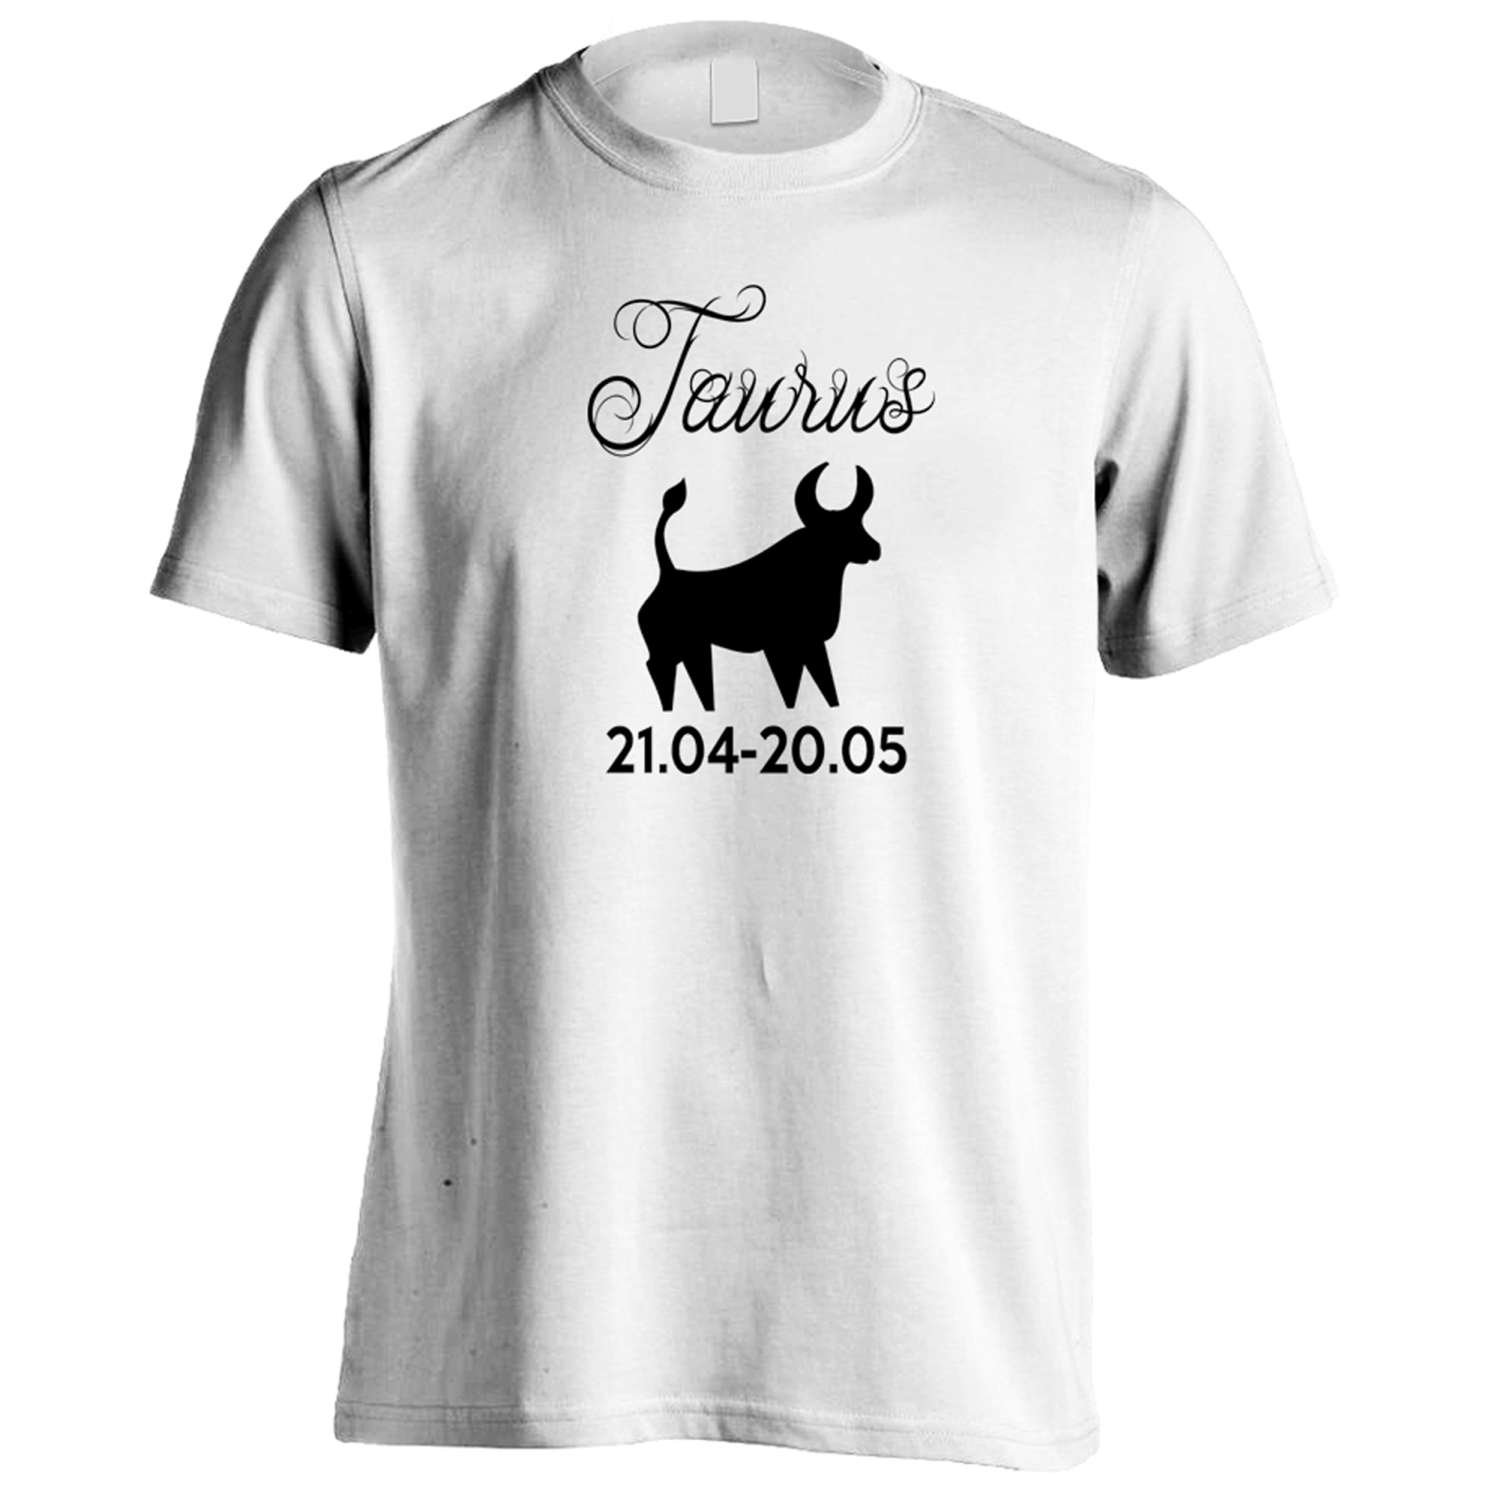 Taurus Zodiac Sign Men's T-Shirt Tee b47m